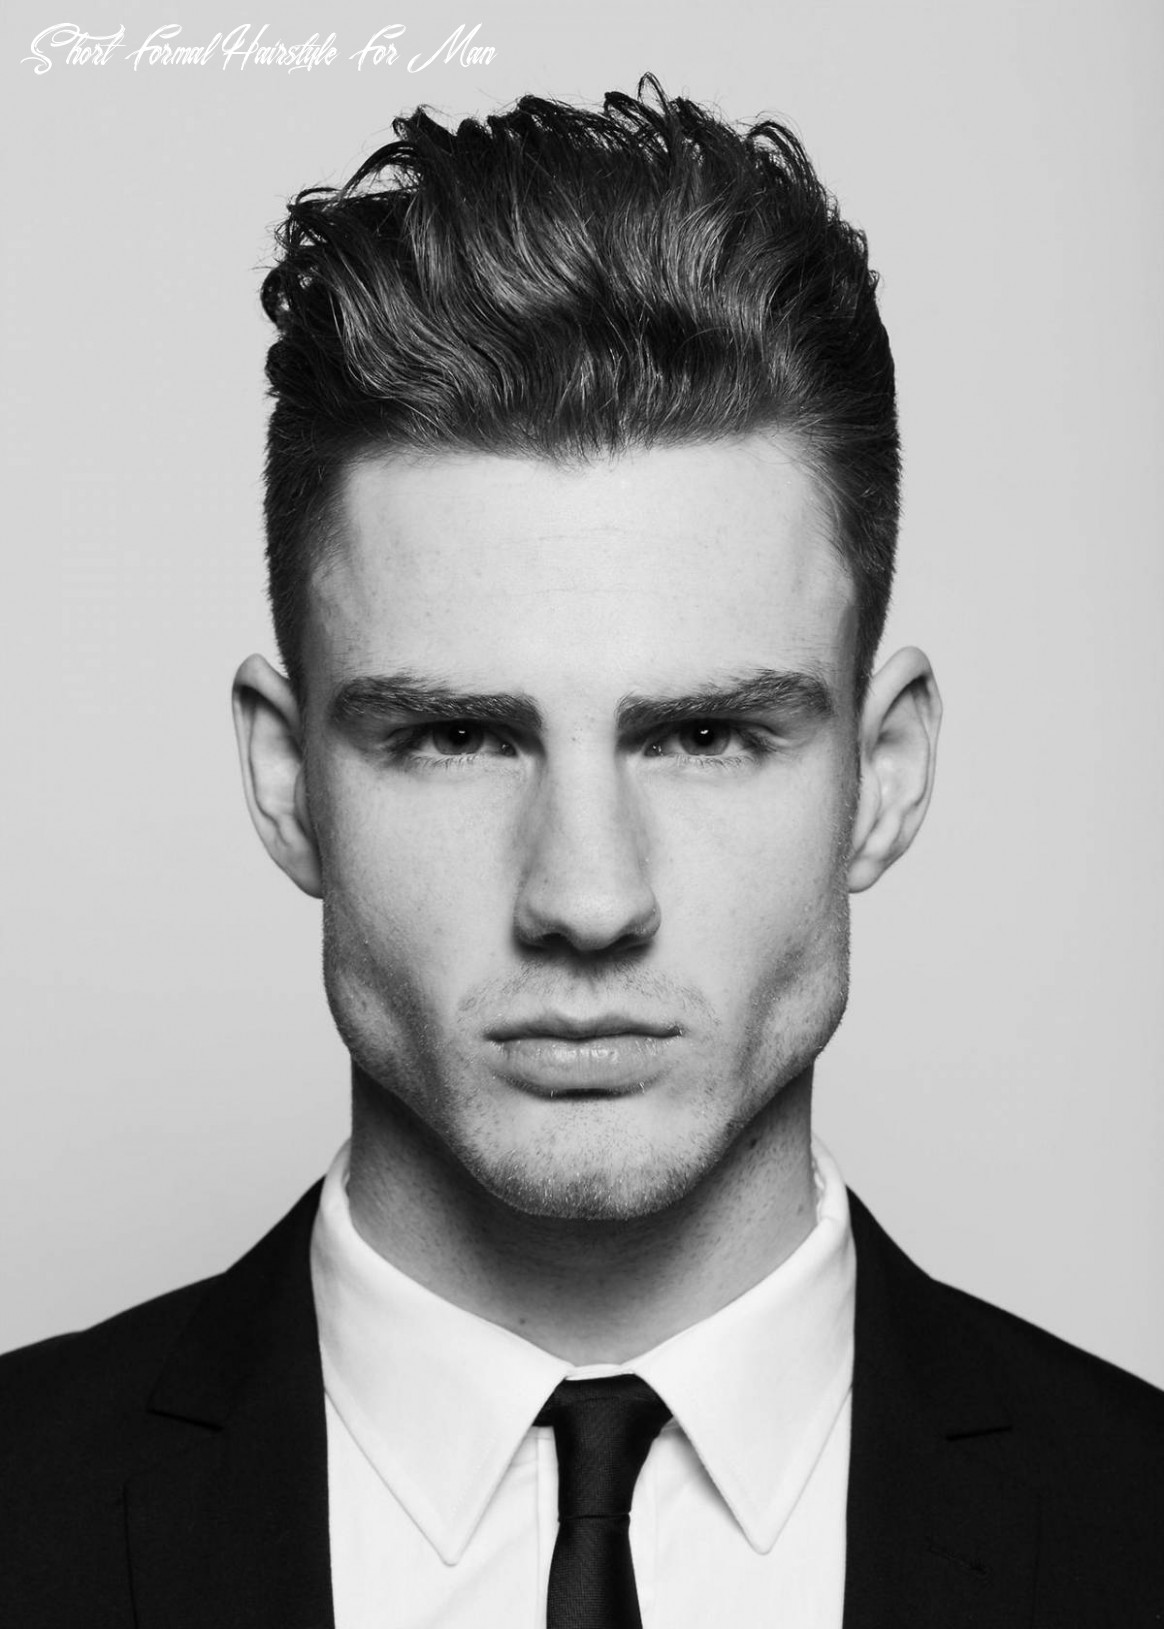 10 best stylish short hairstyles for men [with photos & tips] short formal hairstyle for man